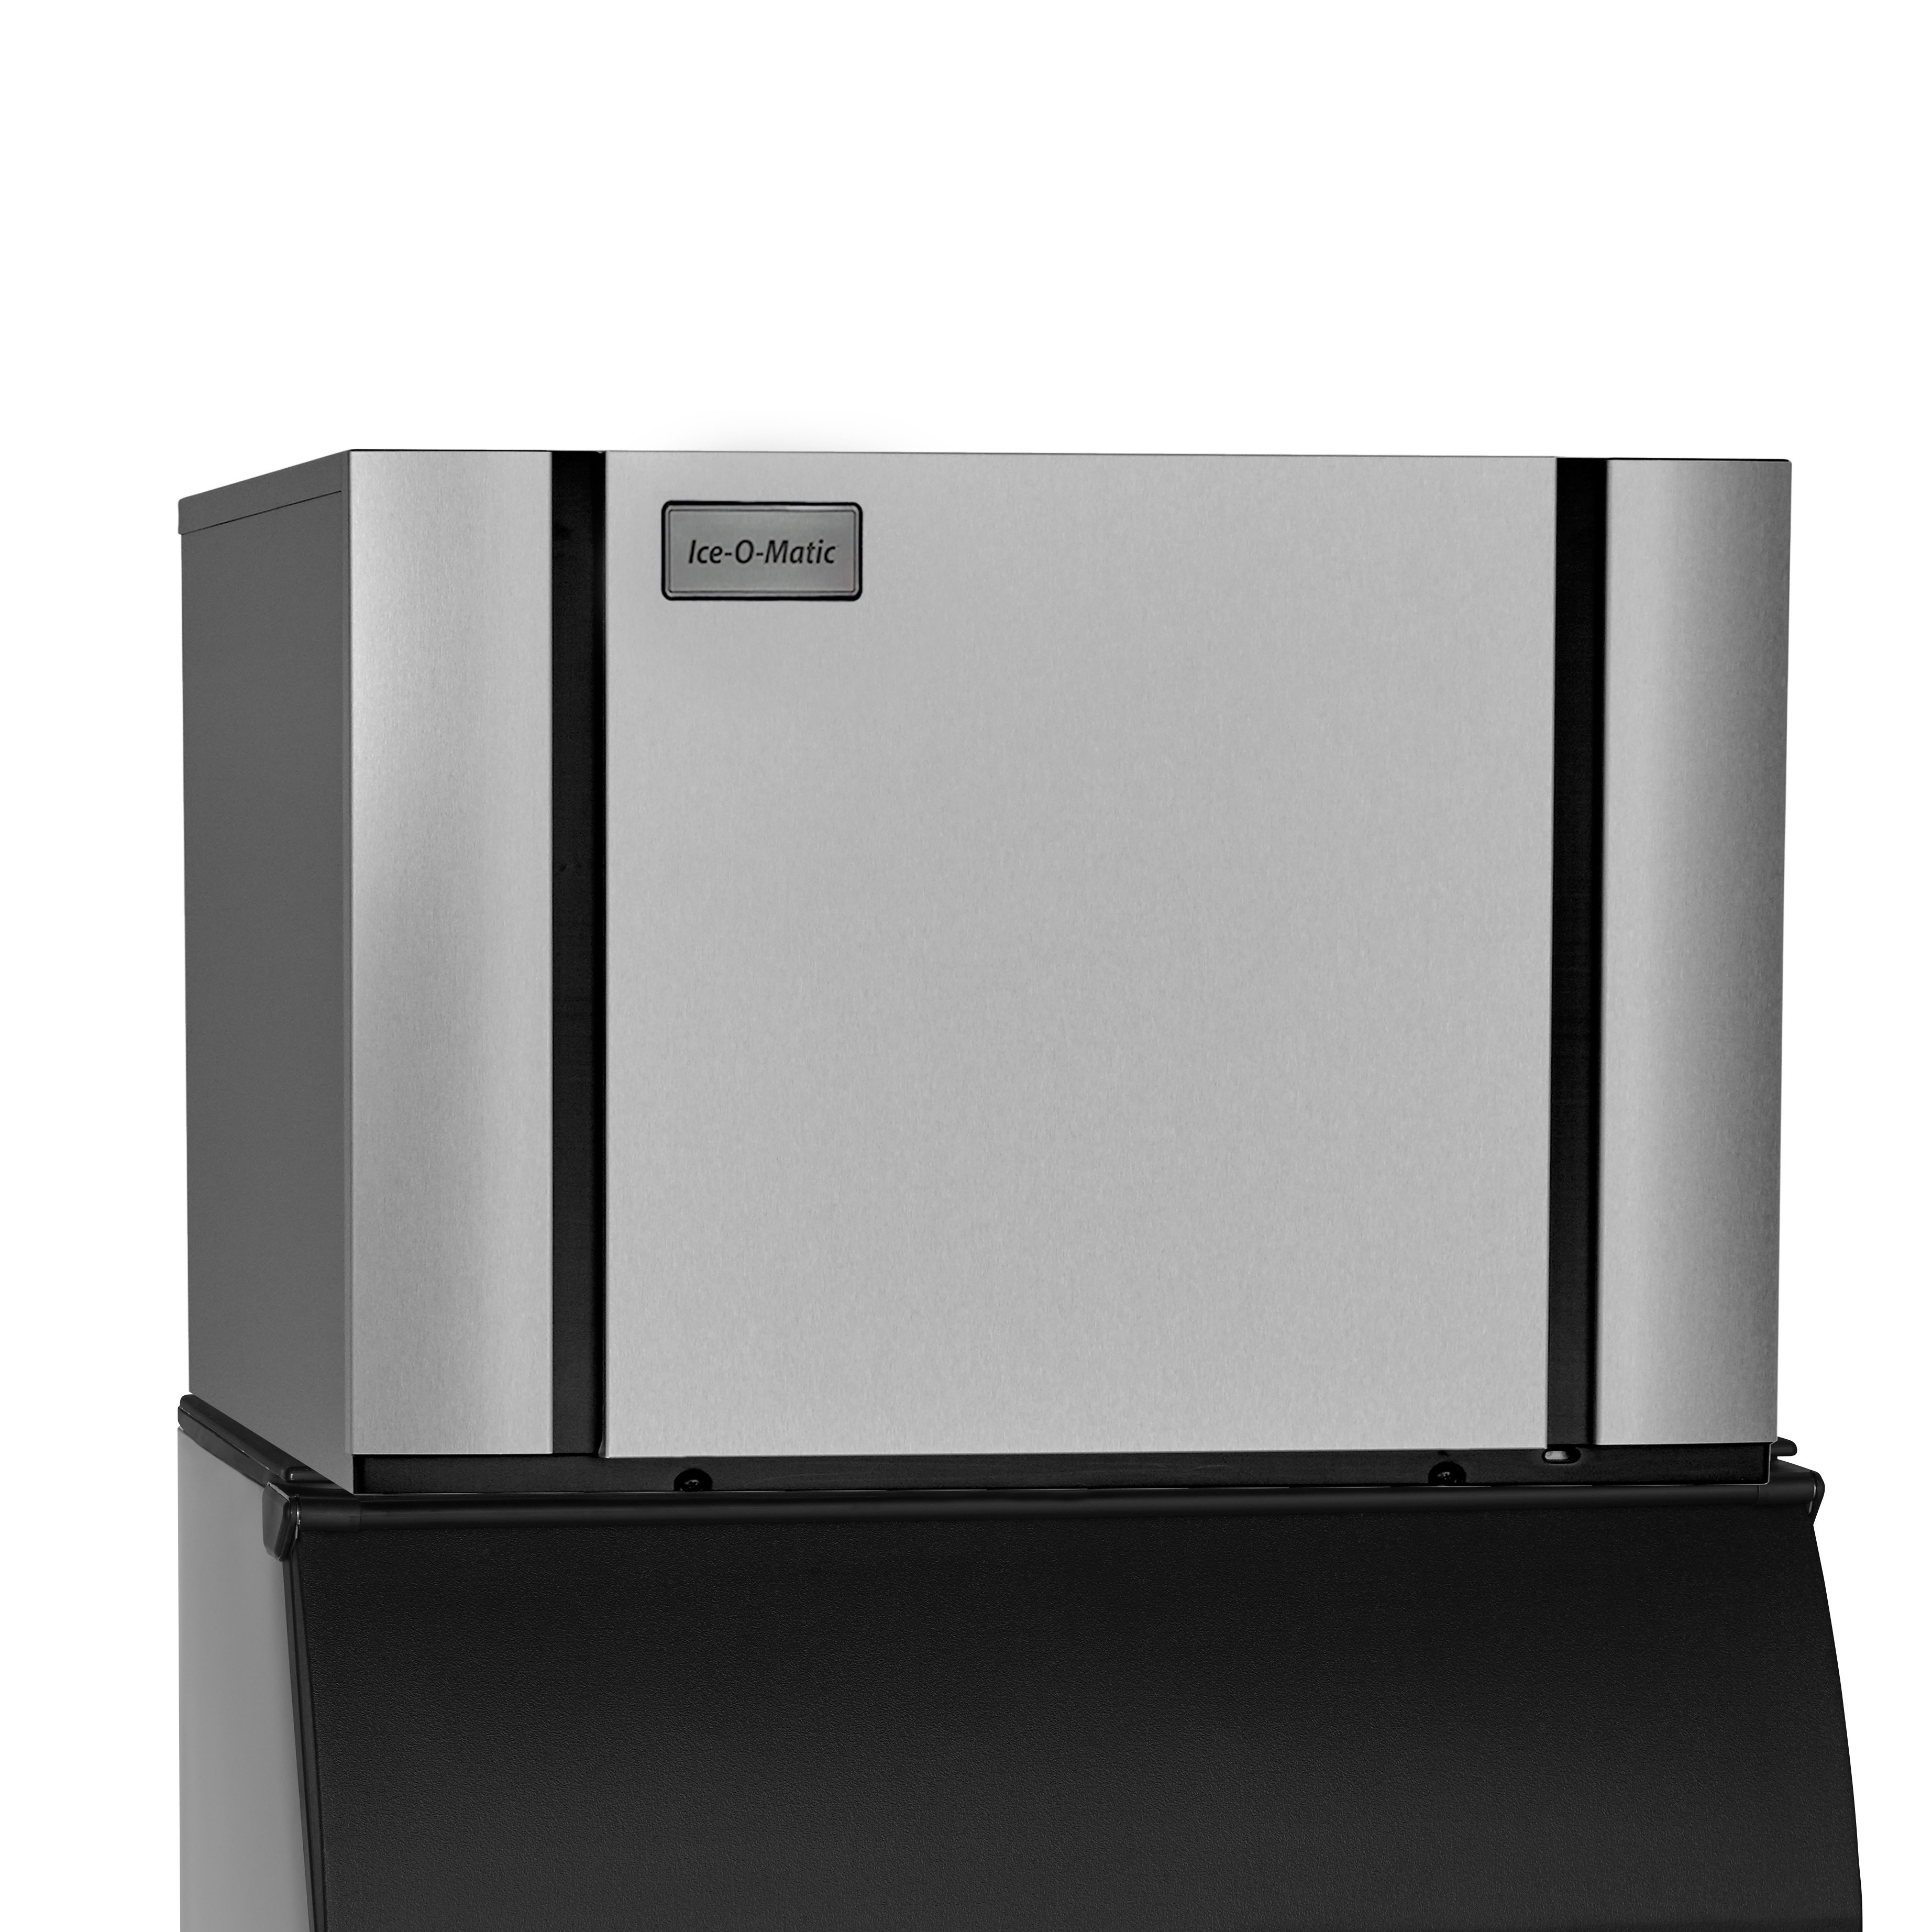 Ice-O-Matic CIM1447HW ice maker, cube-style